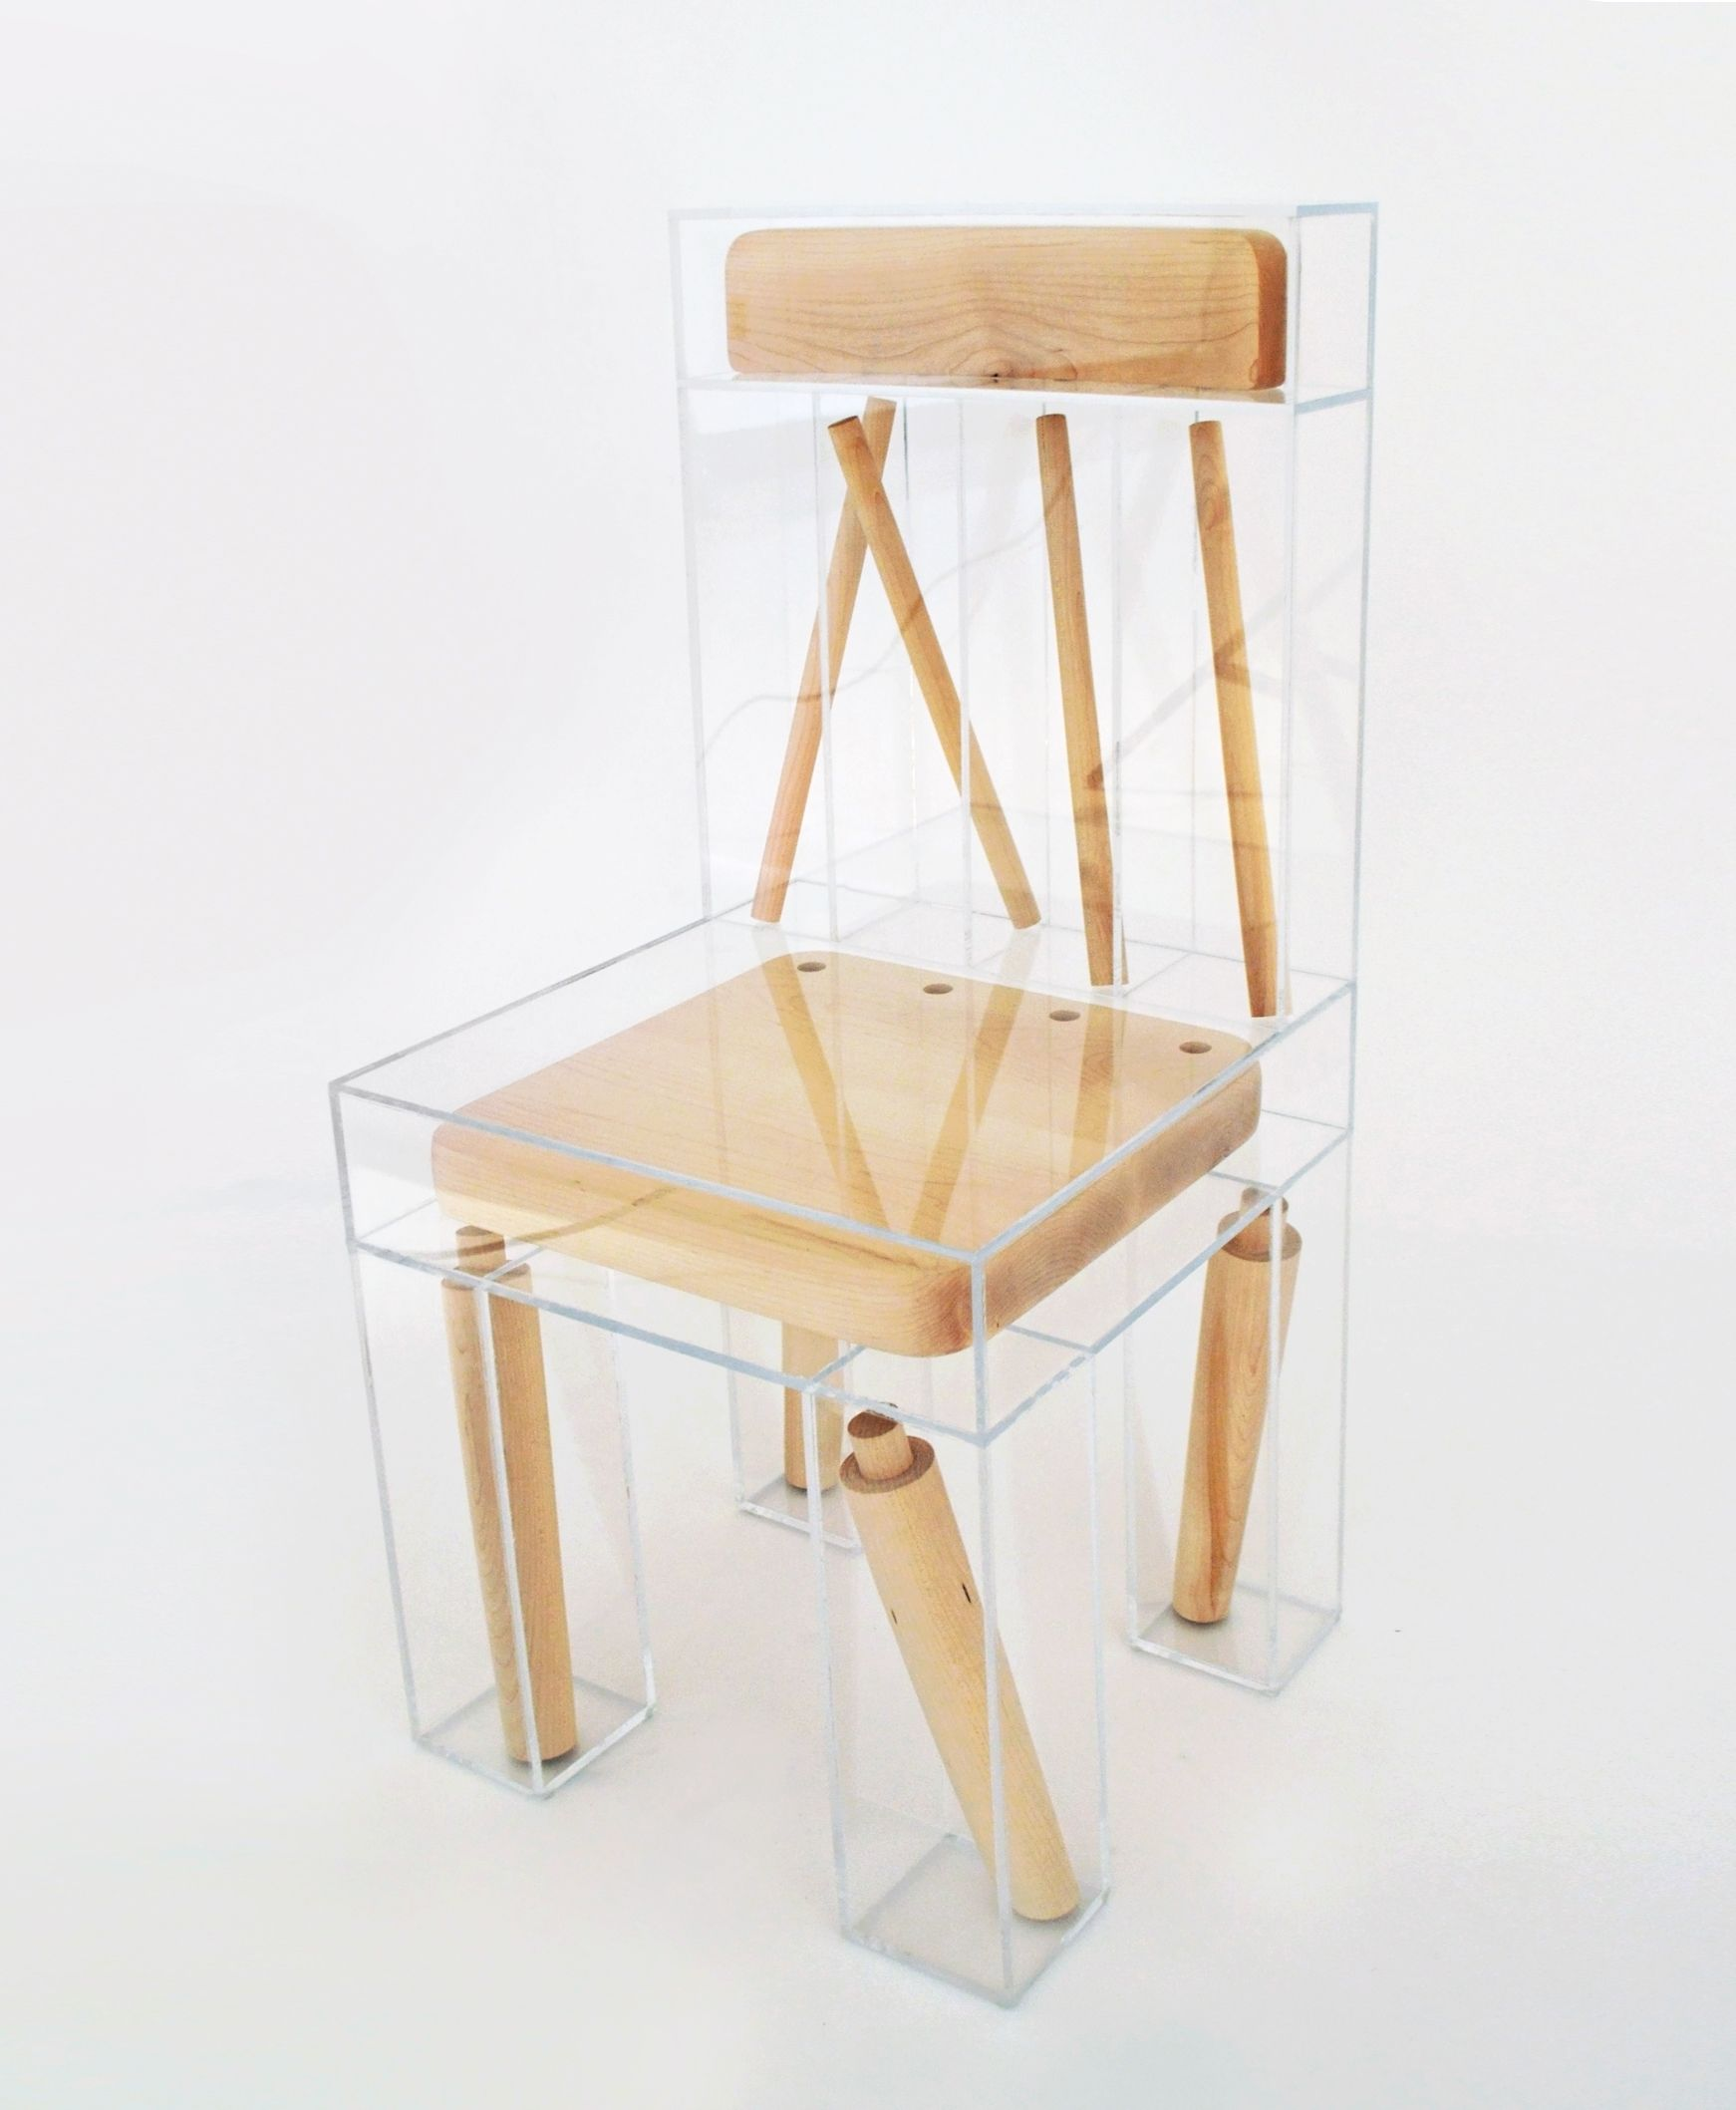 Elegant Exploded Chair By Joyce Lin (Furniture Designs)